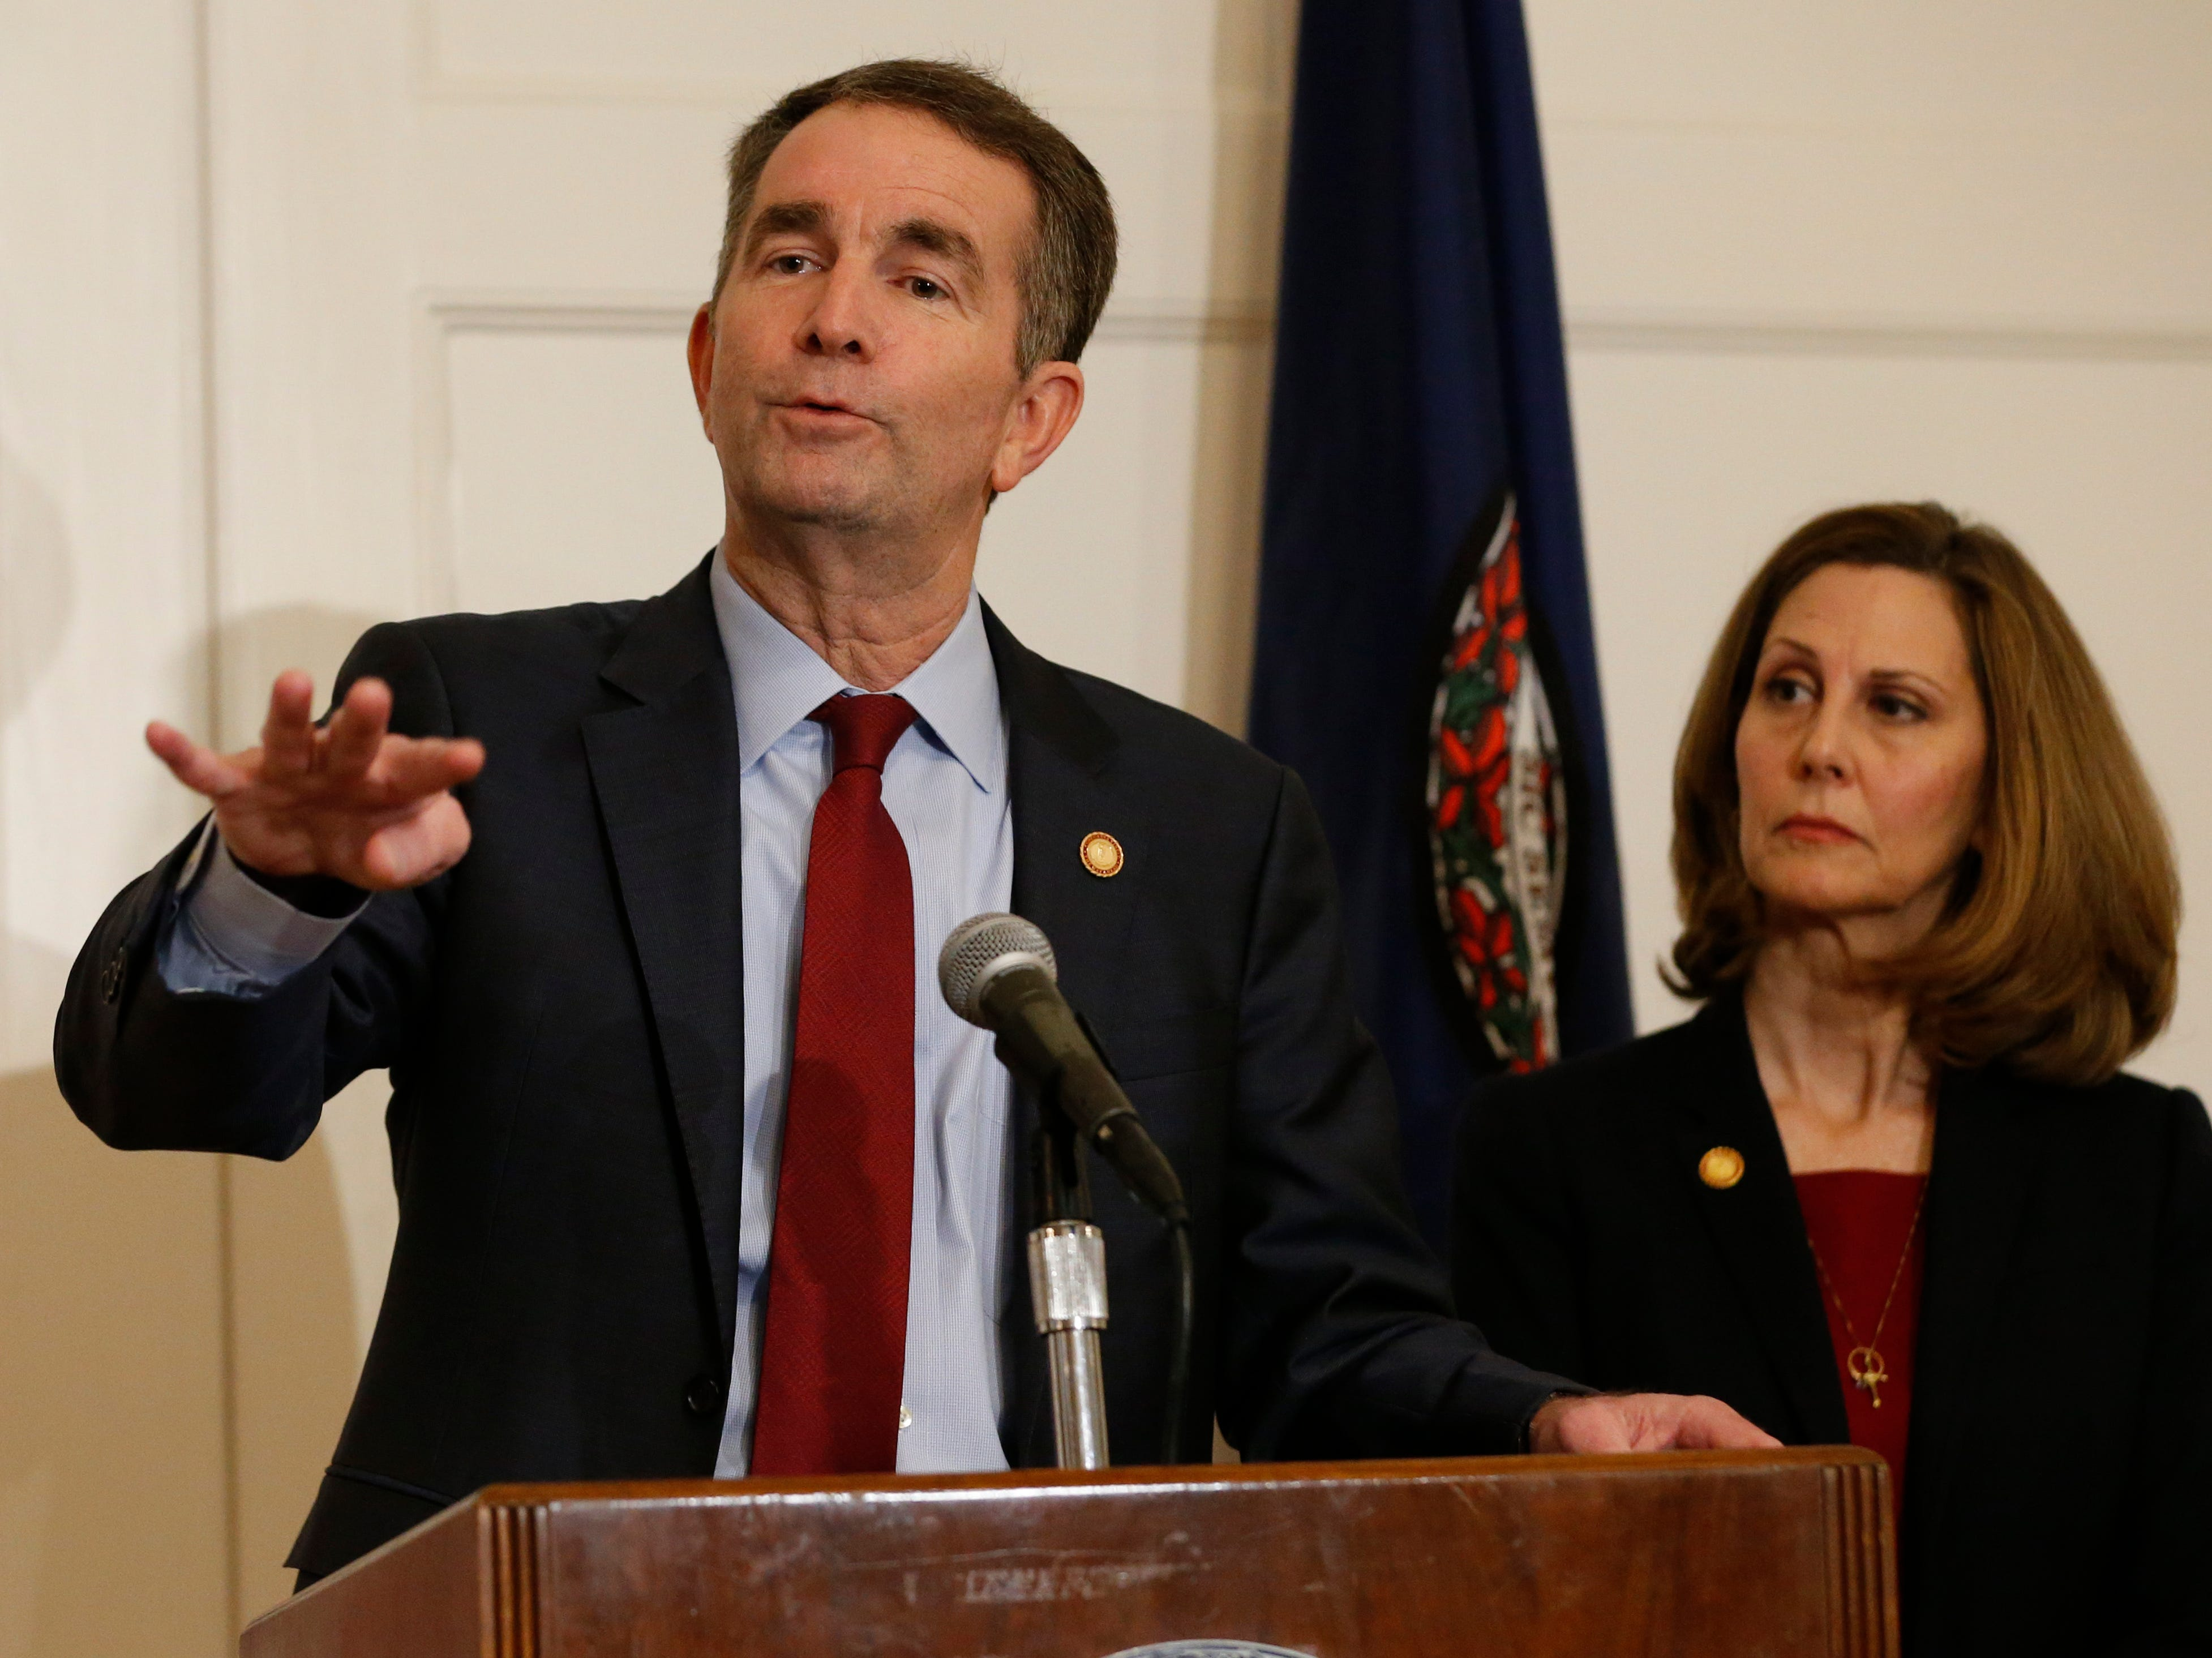 Virginia Gov. Ralph Northam, left, gestures as his wife, Pam, listens during a news conference in the Governors Mansion at the Capitol in Richmond, Va., Saturday, Feb. 2, 2019. Northam is under fire for a racial photo that appeared in his college yearbook.